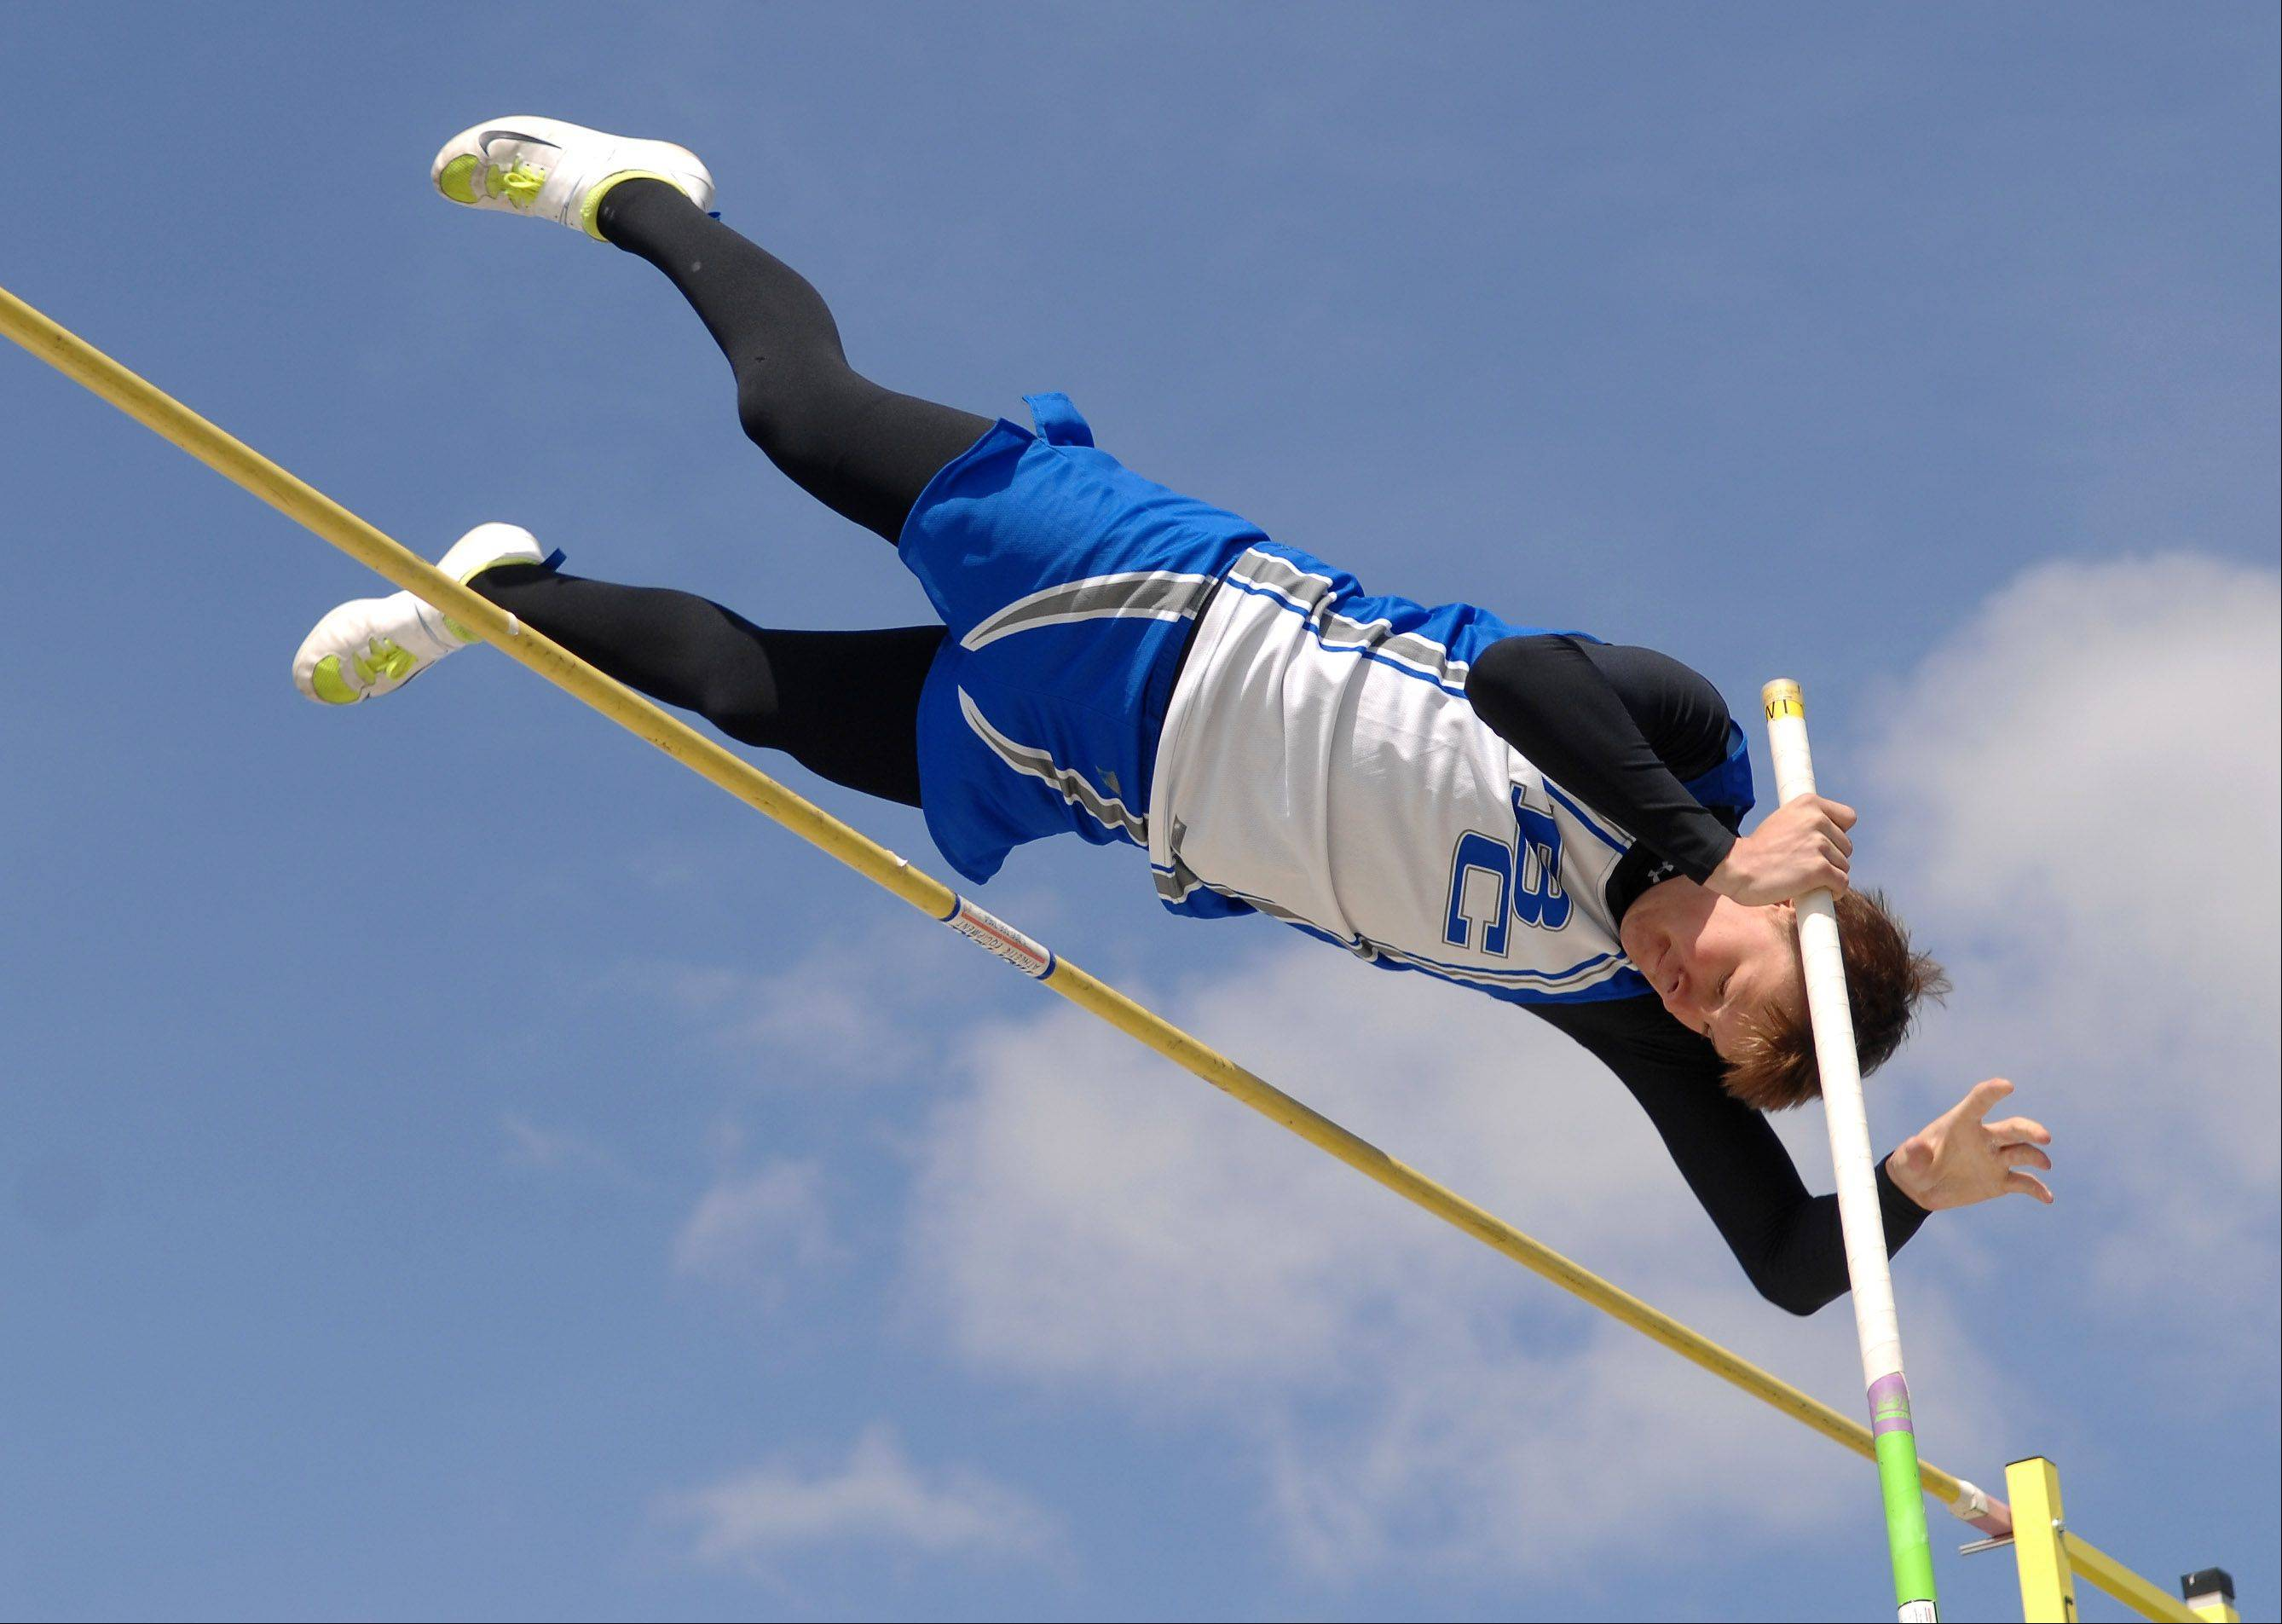 Burlington Central's Kyle Ingraham clears the bar in the pole vault during the Peterson Prep Invitational boys track meet at Kaneland High School in Maple Park Saturday.